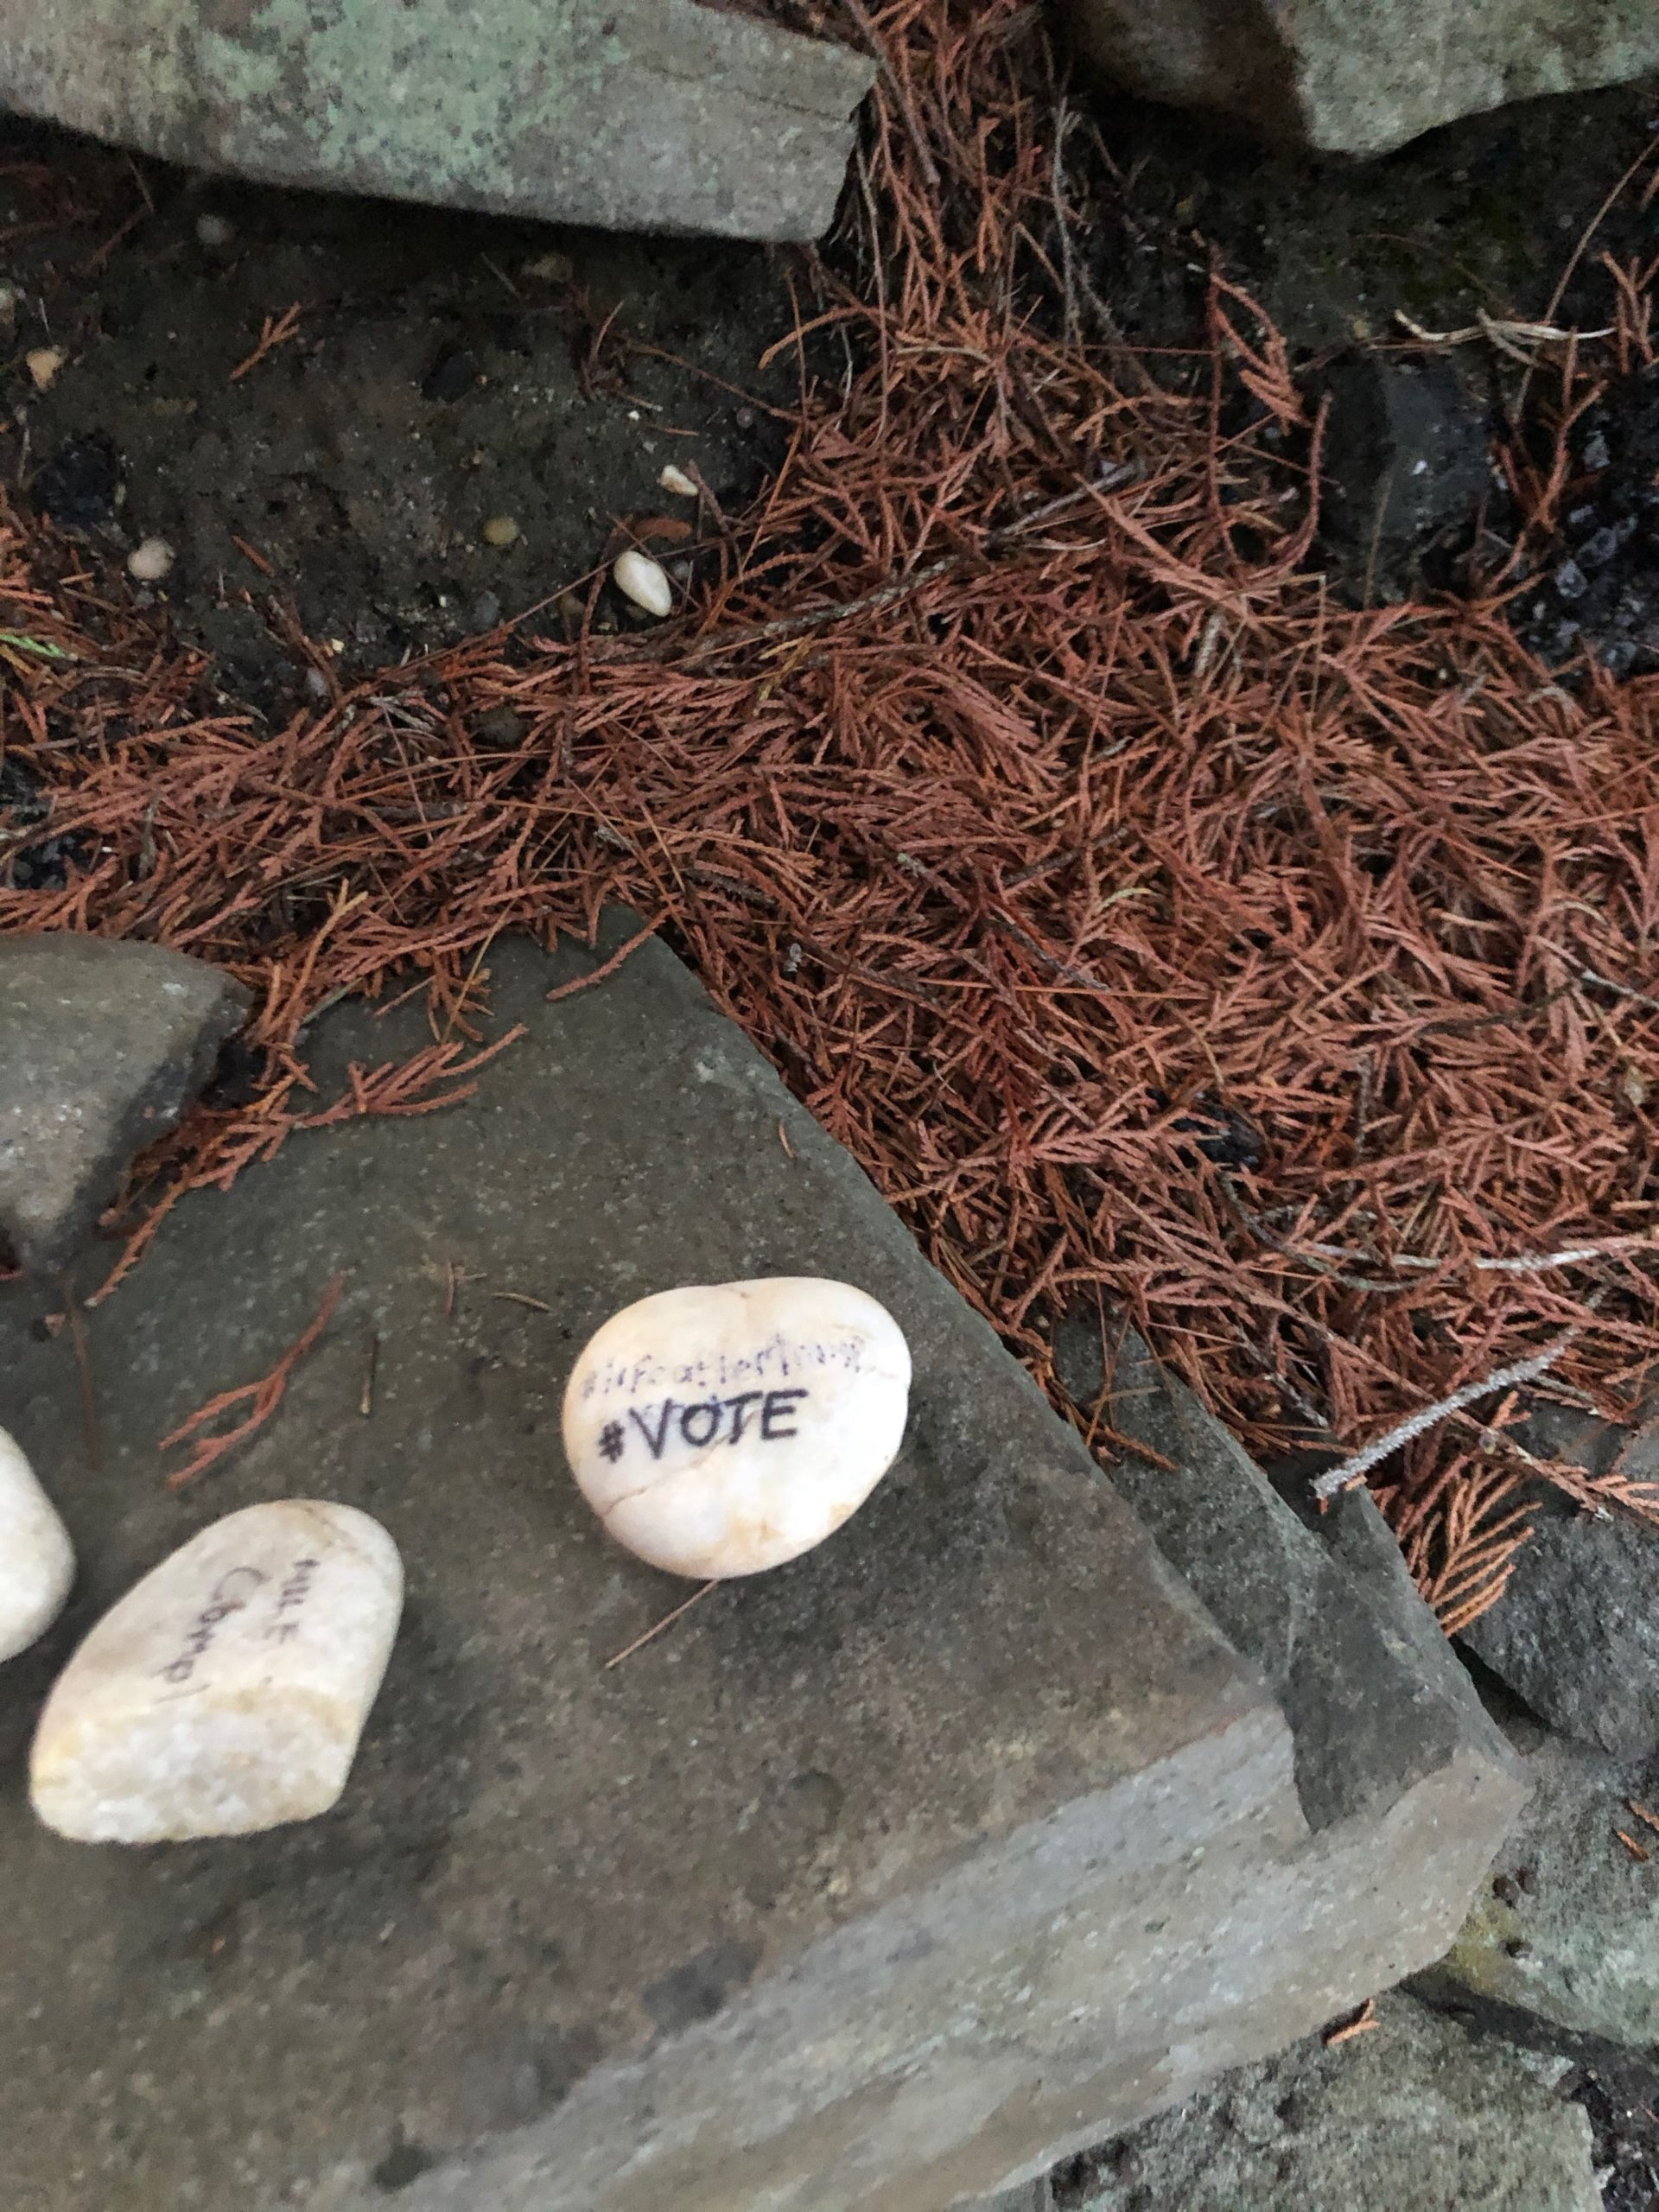 A rock with the word